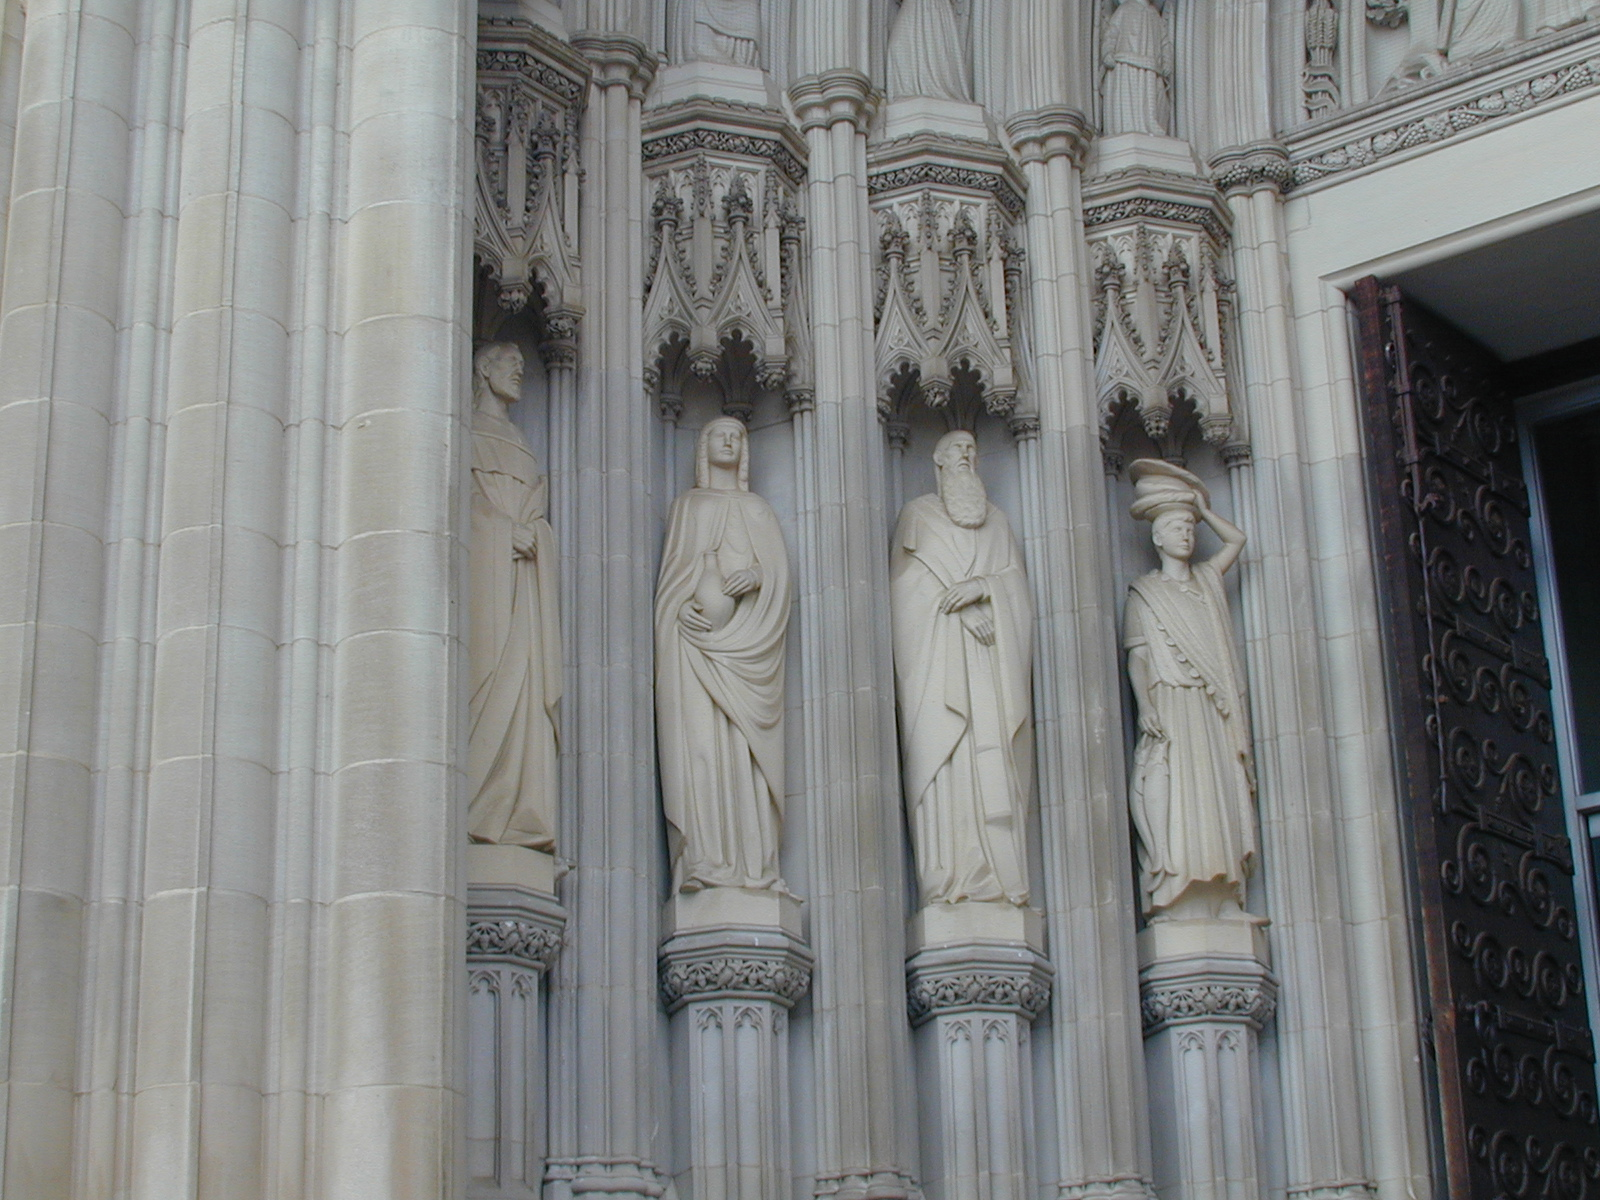 National Cathedral, Washington, U.S.A., Soul portal sculptures